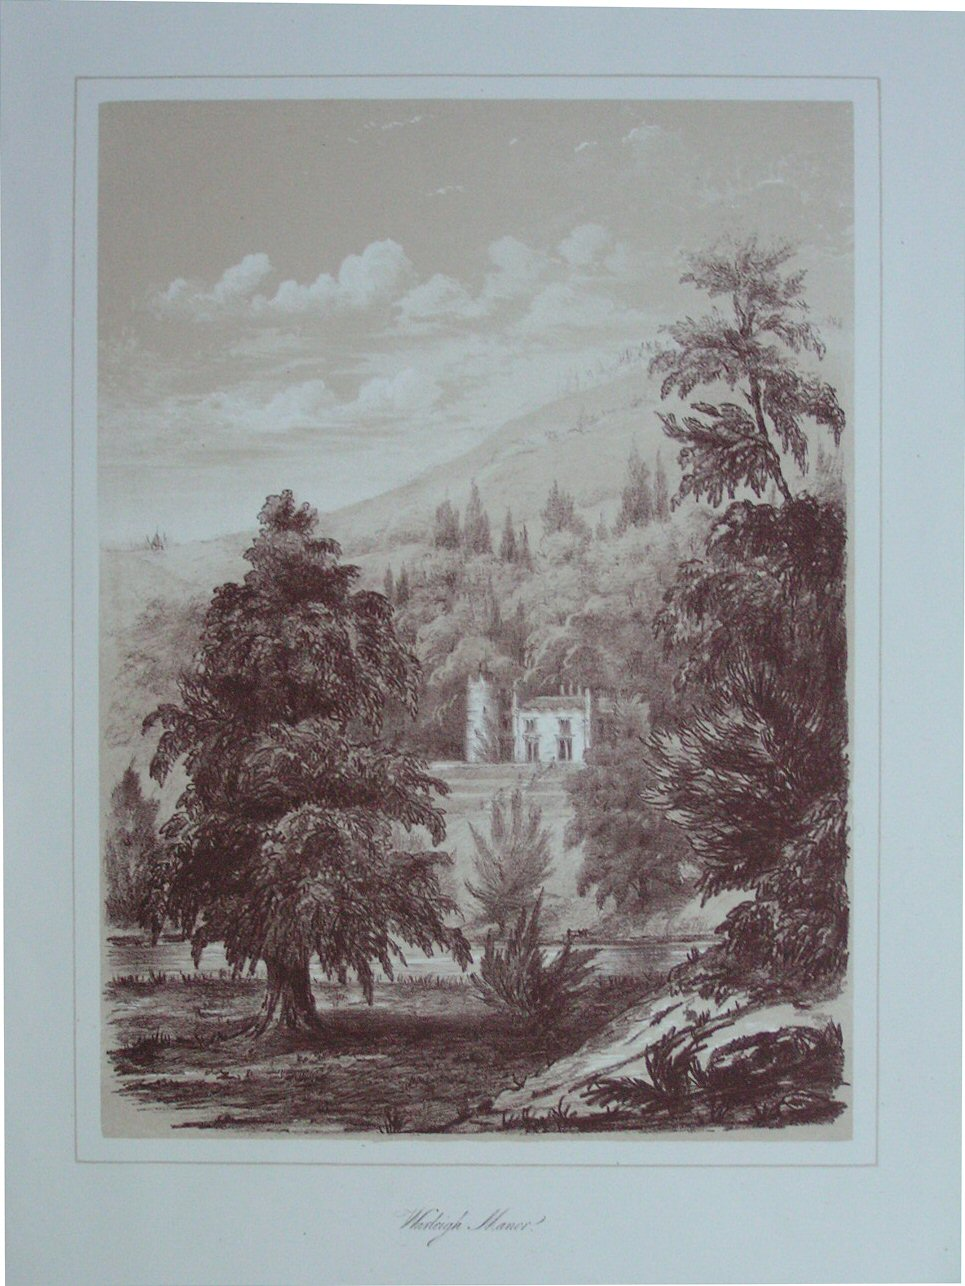 Lithograph - Warleigh Manor